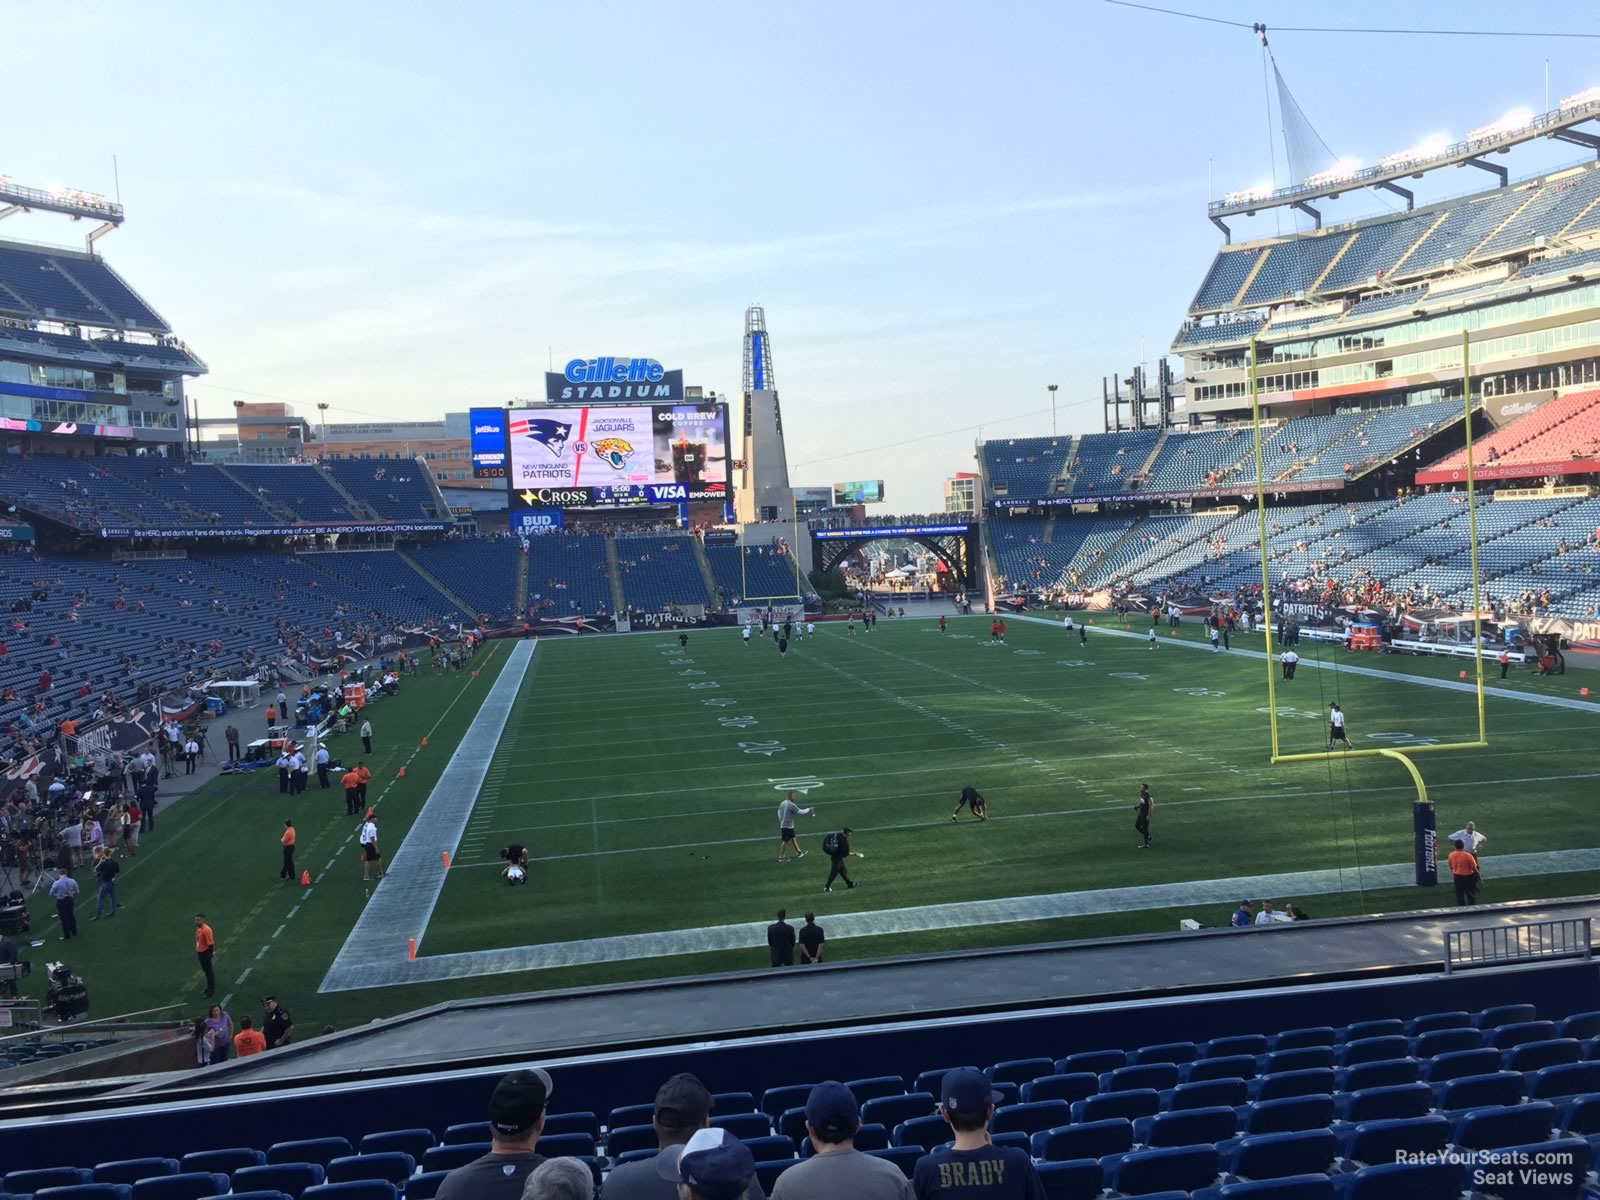 New England Patriots Seat View for Gillette Stadium Section 122, Row 29